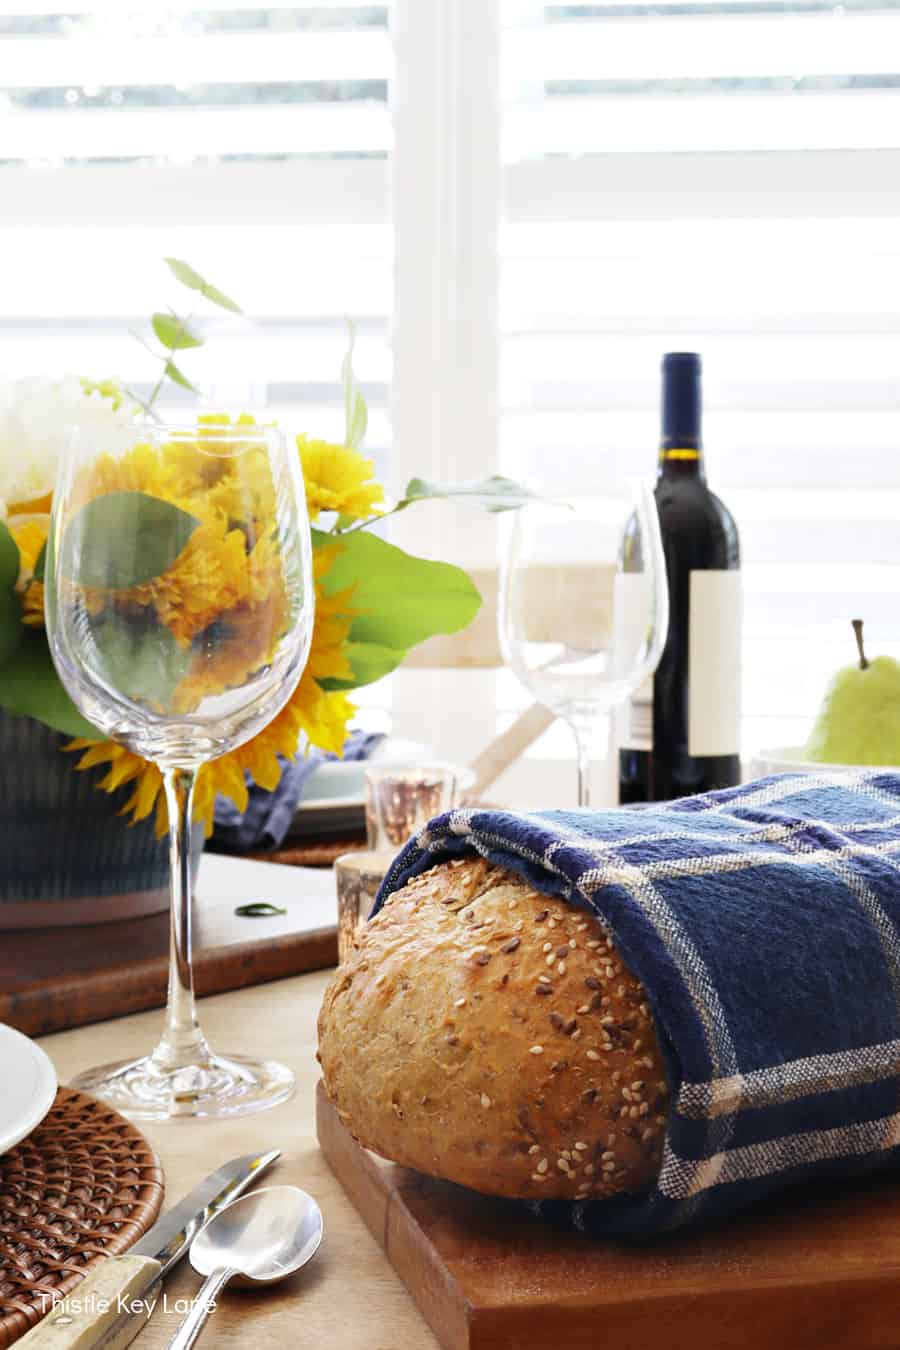 Bread wrapped in a navy plaid napkin on a bread board. Early Fall Tablescape With Sunflowers.